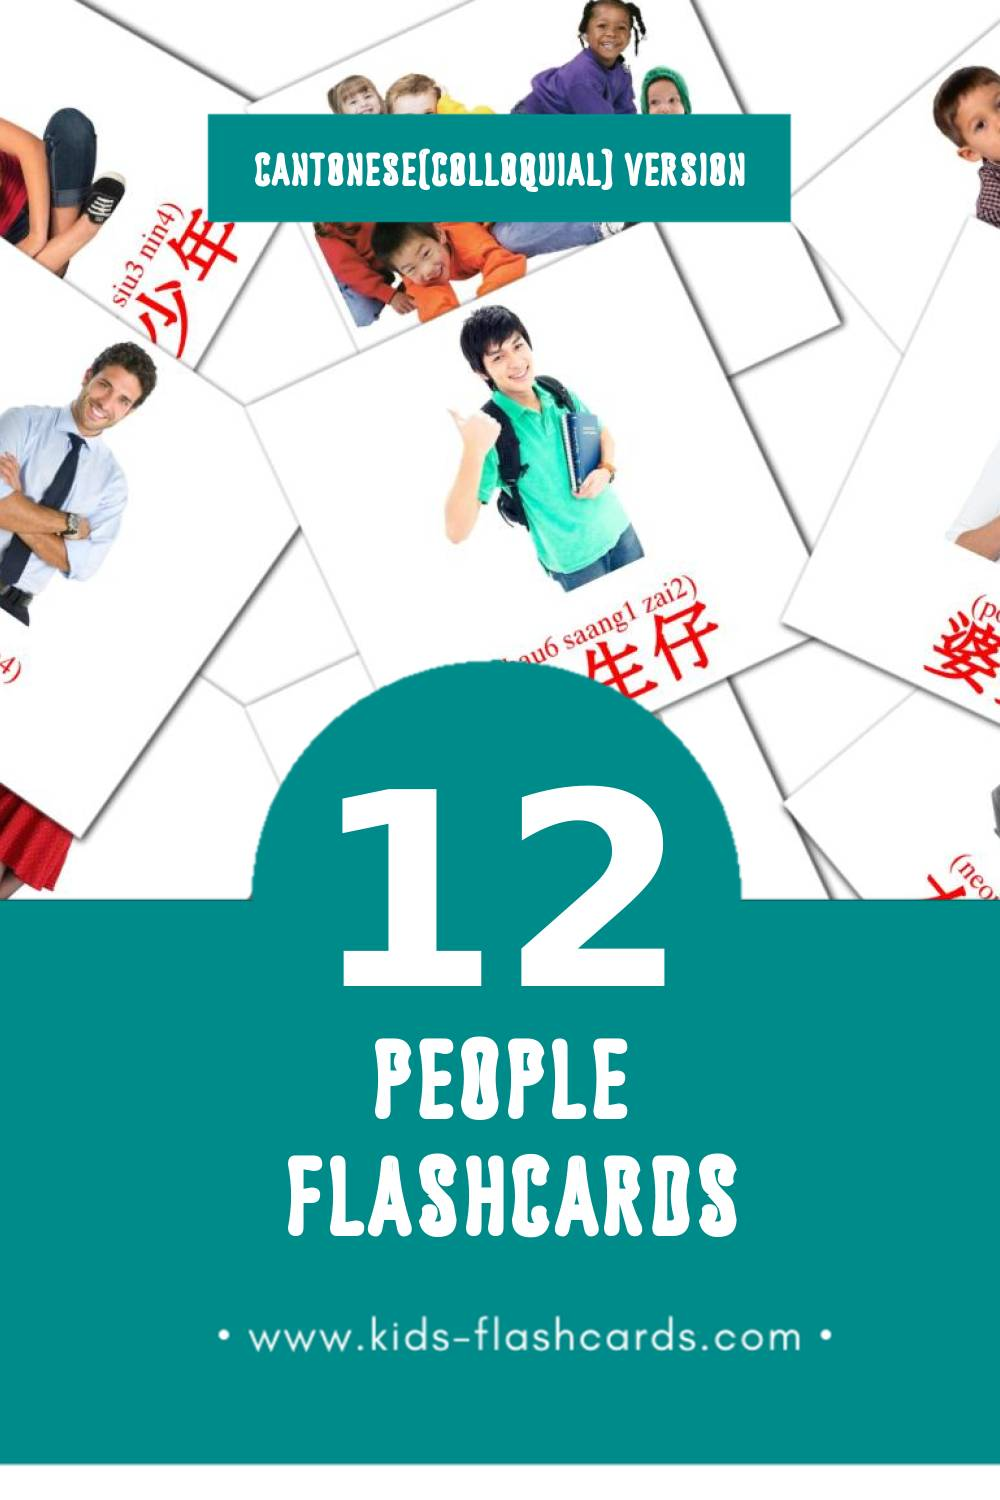 Visual 人(jan4) Flashcards for Toddlers (12 cards in Cantonese(Colloquial))